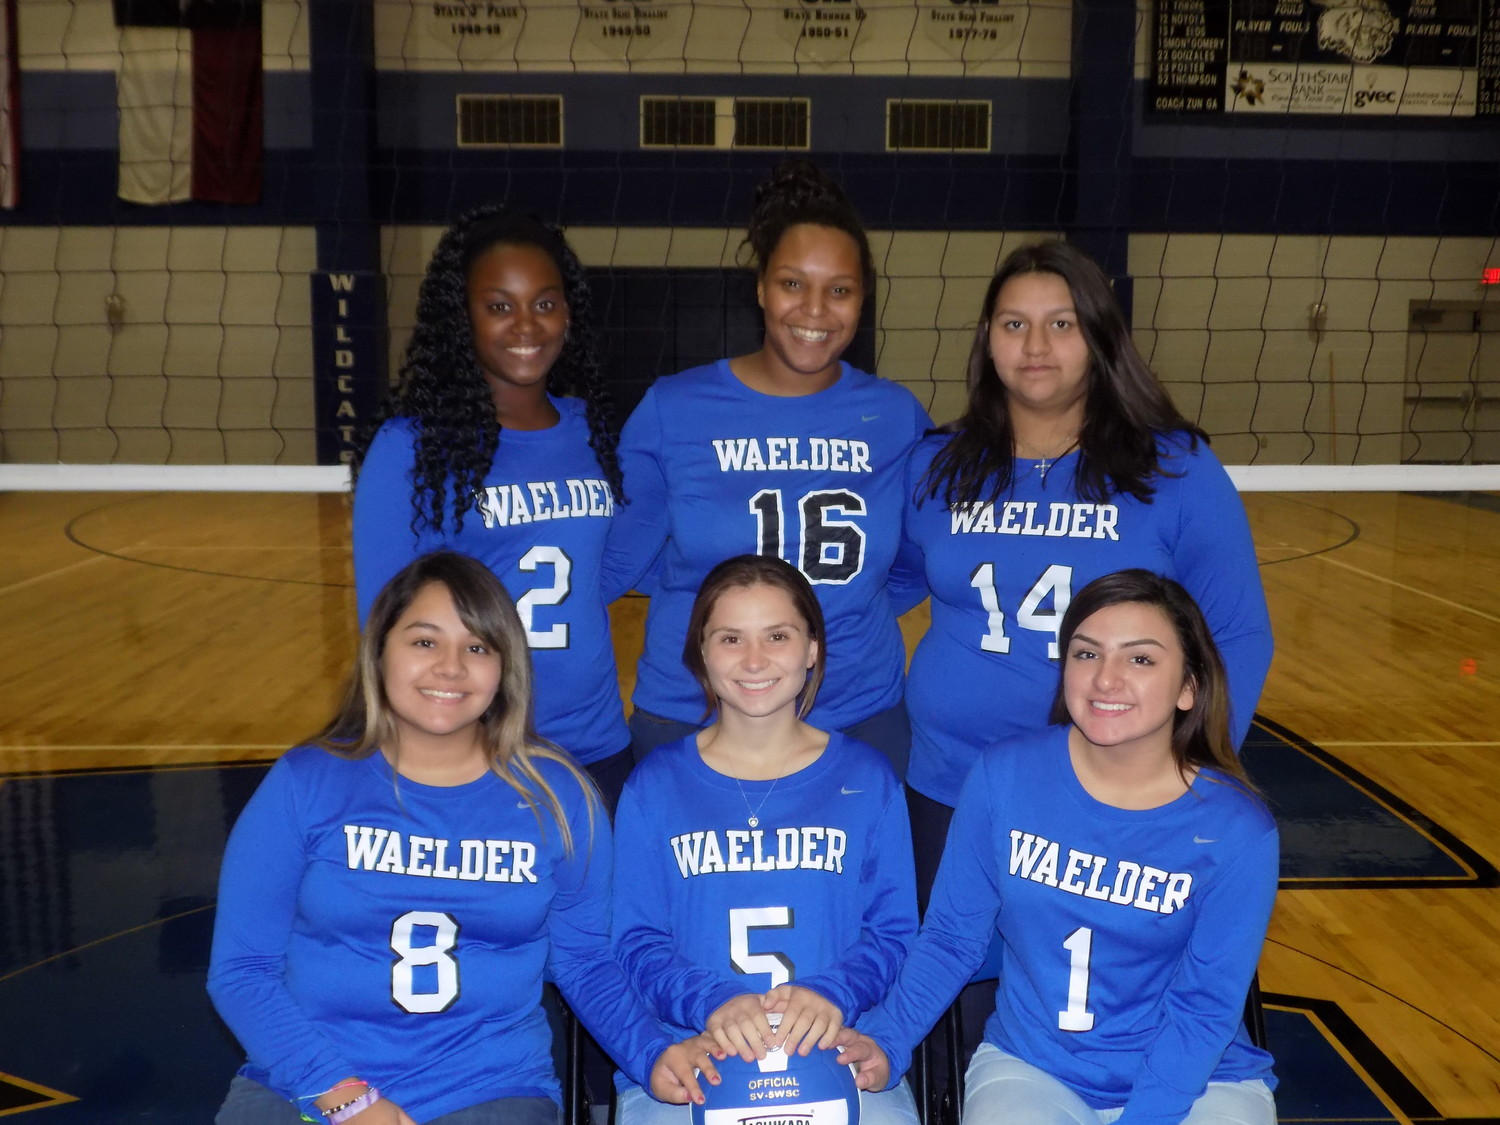 The Waelder Lady Wildcats had an impressive season, coming out of District 26-1A as champions. Many athletes won all-district honors. Pictured is the junior varsity team.